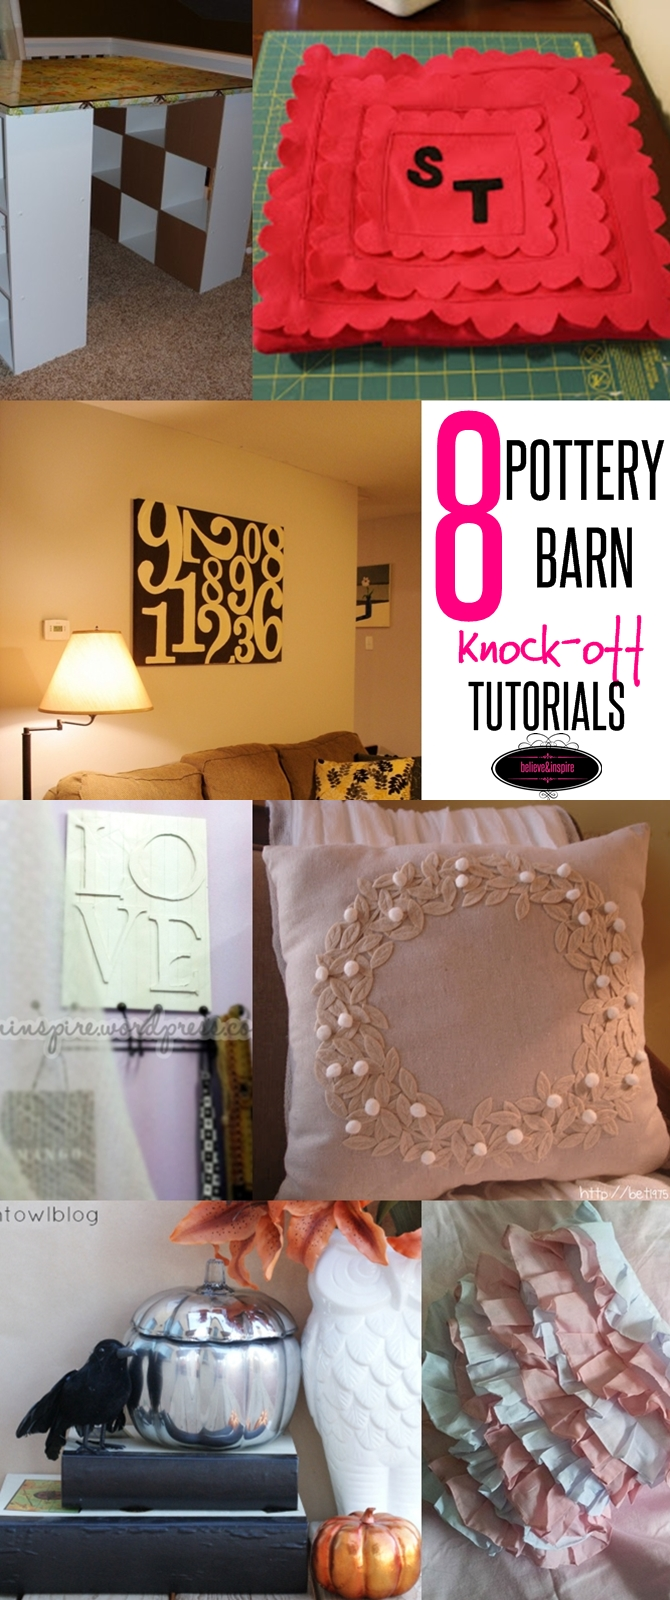 8 POTTERY BARN KNOCK-OFF TUTORIALS ON sewsomestuff.com. Looking for knock off decor ideas to jazz up your home? Check out this list of EIGHT pottery barn knock-off ideas to decorate your home one a budget. Read now!